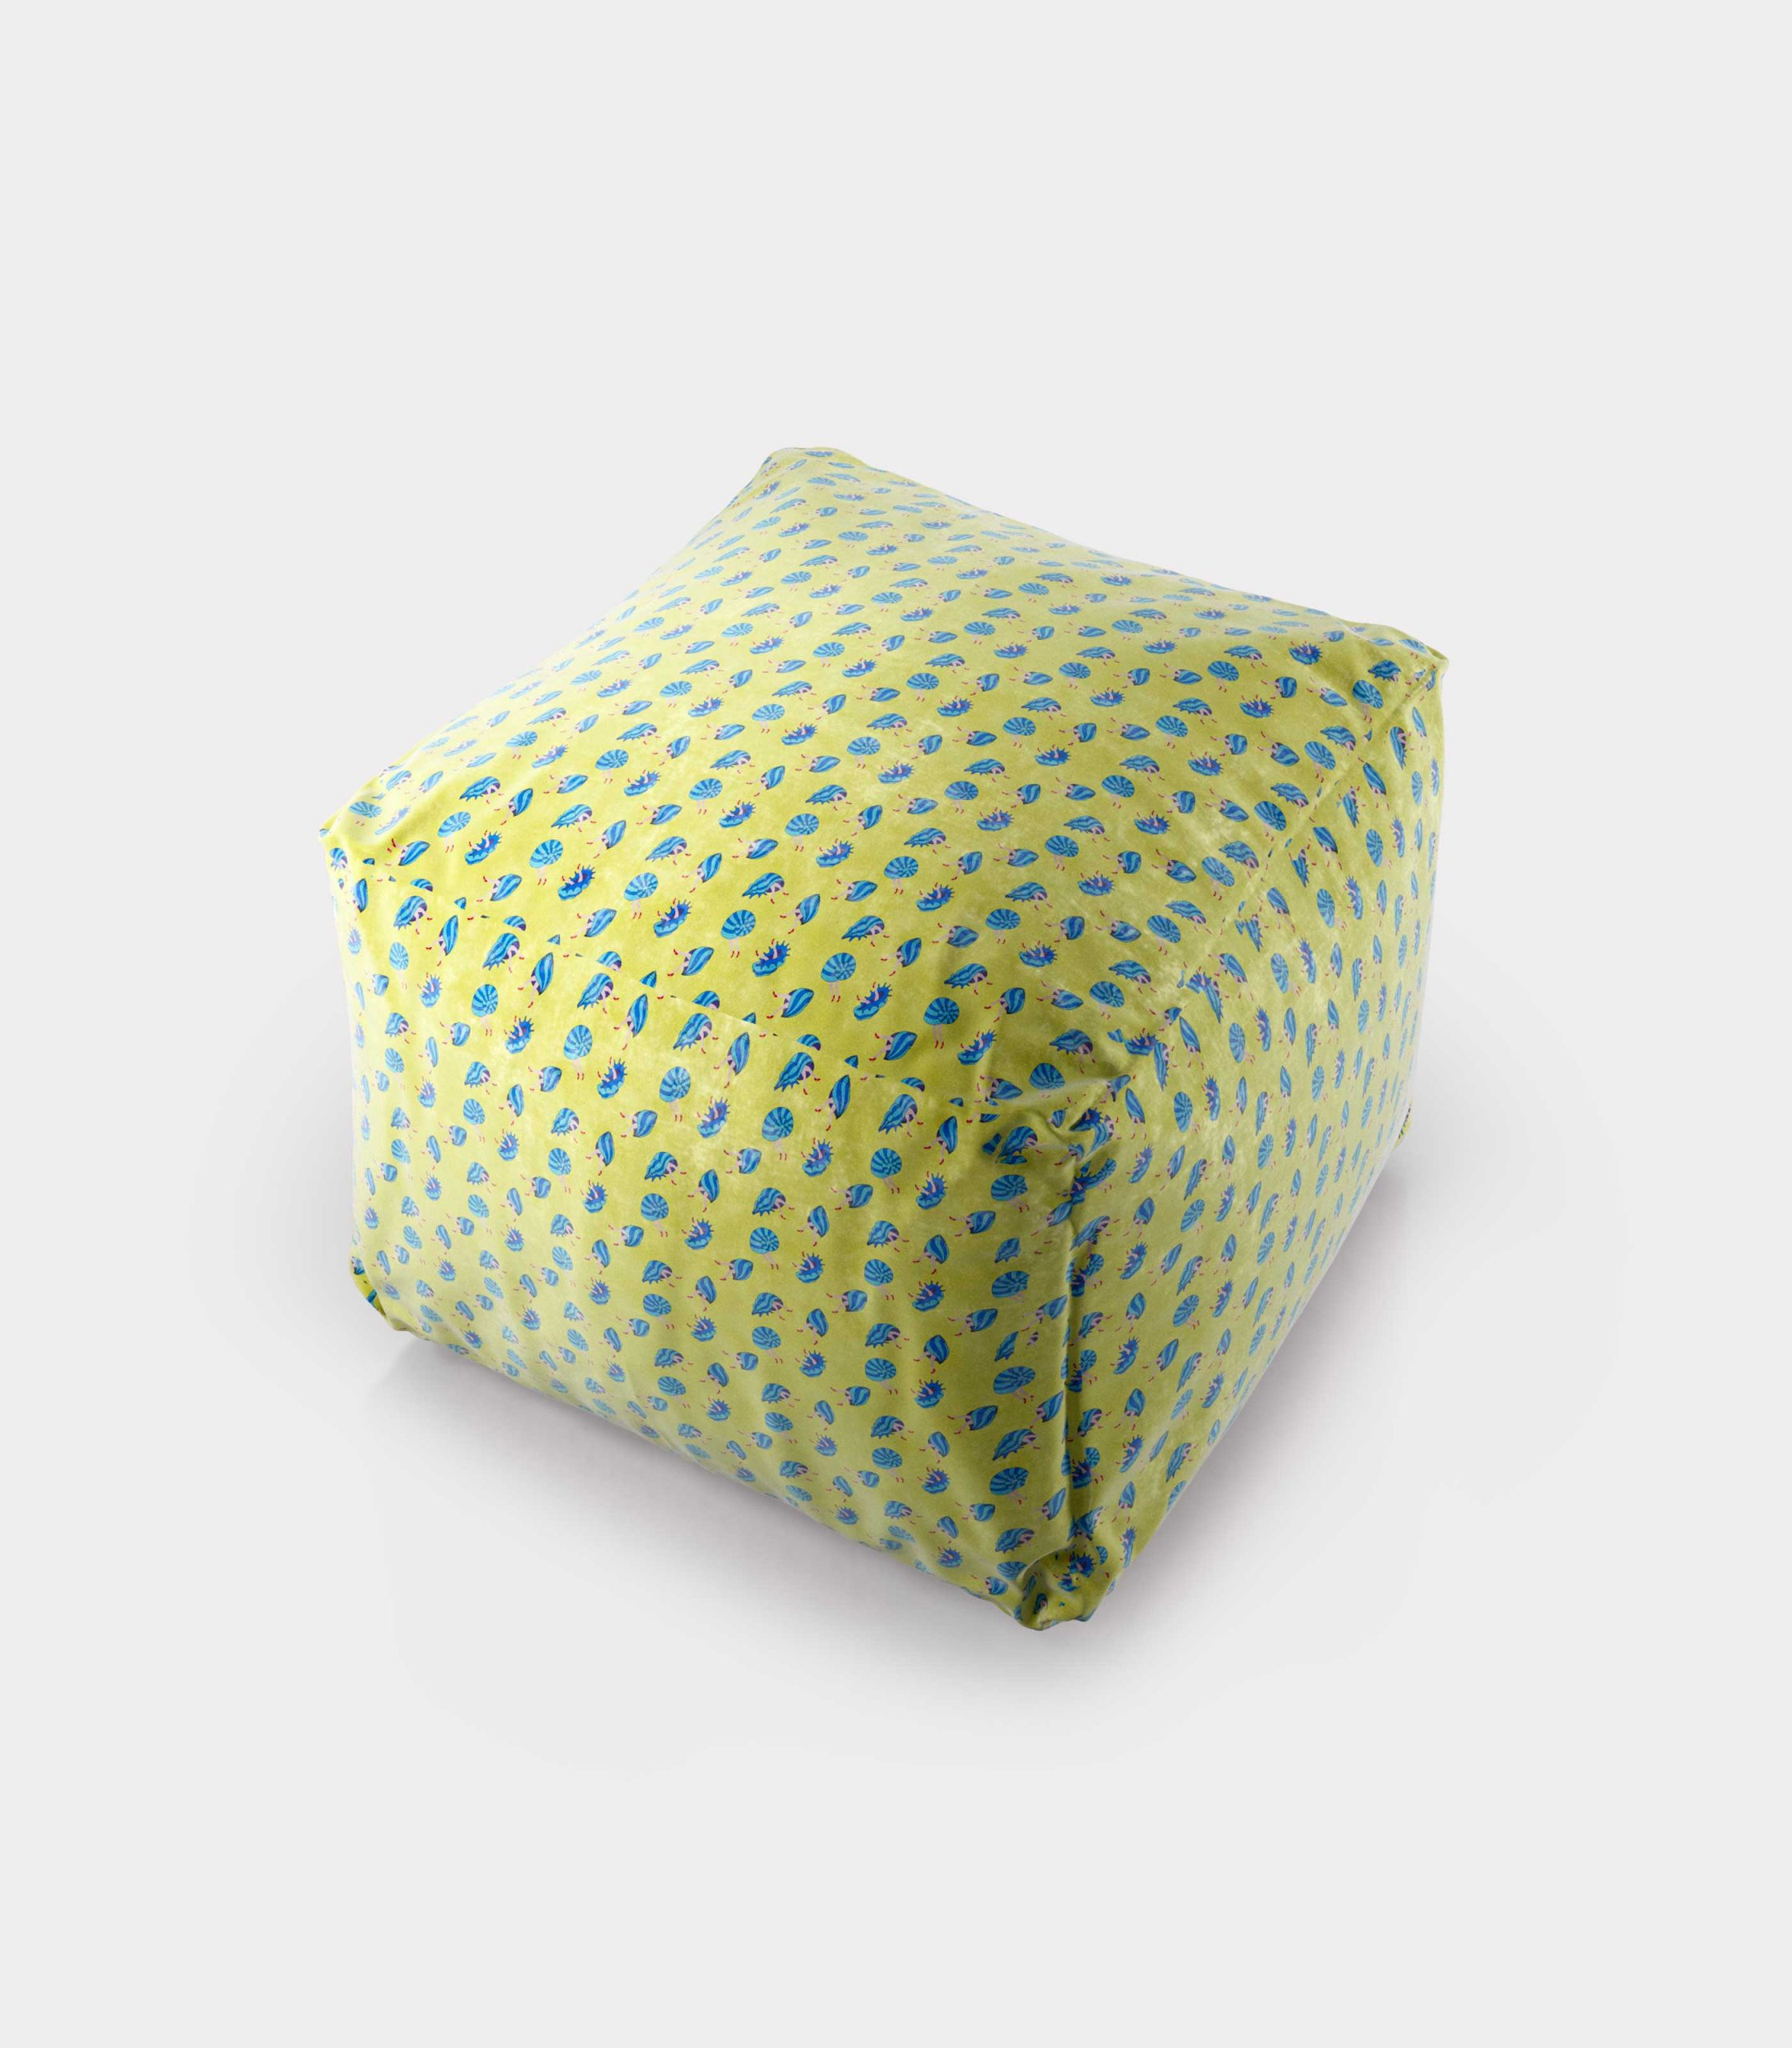 """Polystyrene Pouf with """"Shells and Legs"""" pattern loopo milan design FD"""